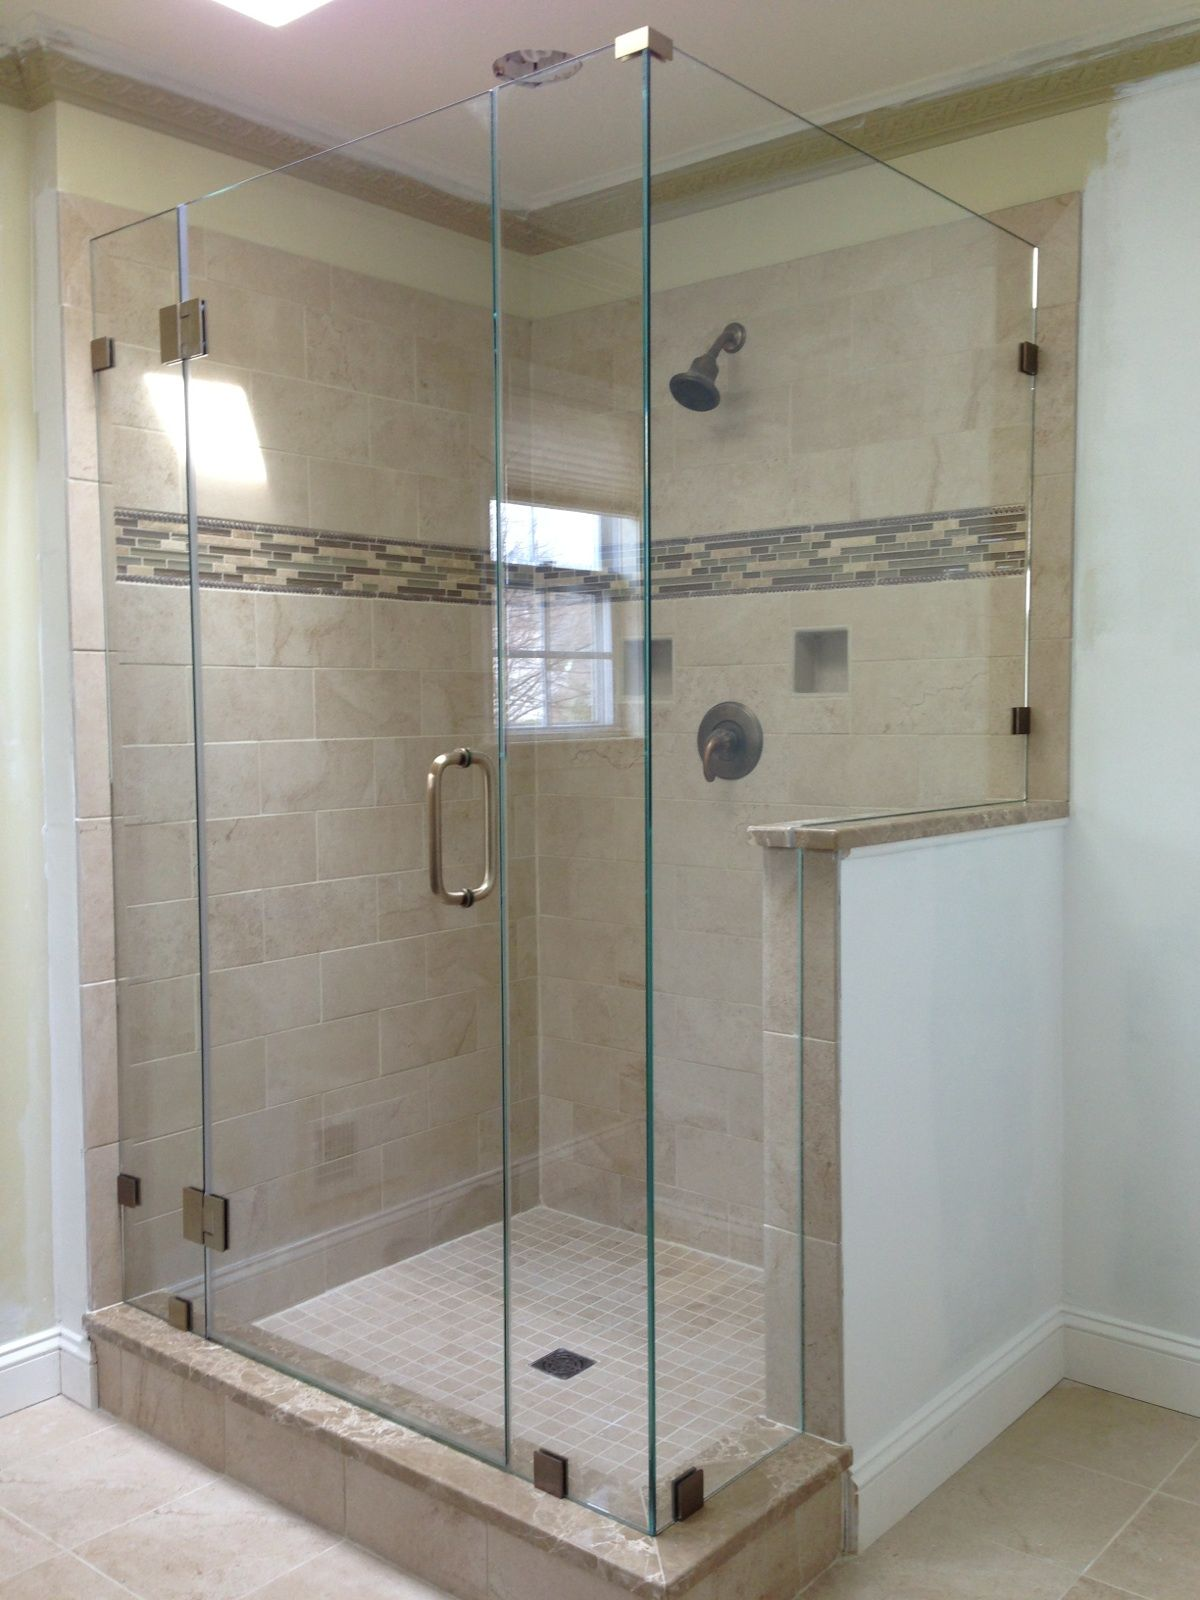 Showerman Frameless Shower Door With Images Frameless Shower Doors